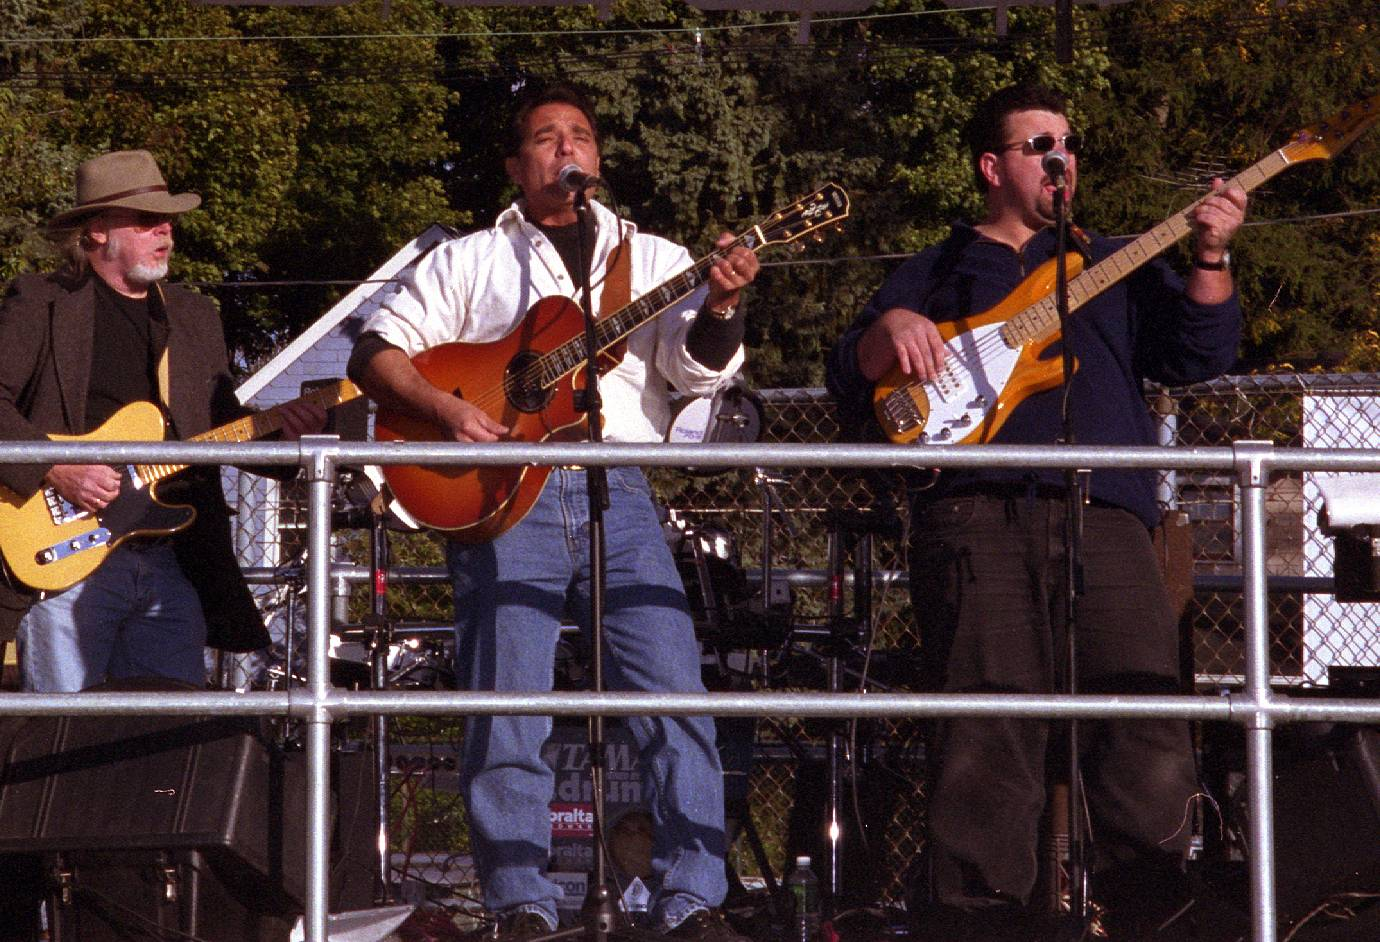 Anthony_with_band.jpg (229504 bytes)